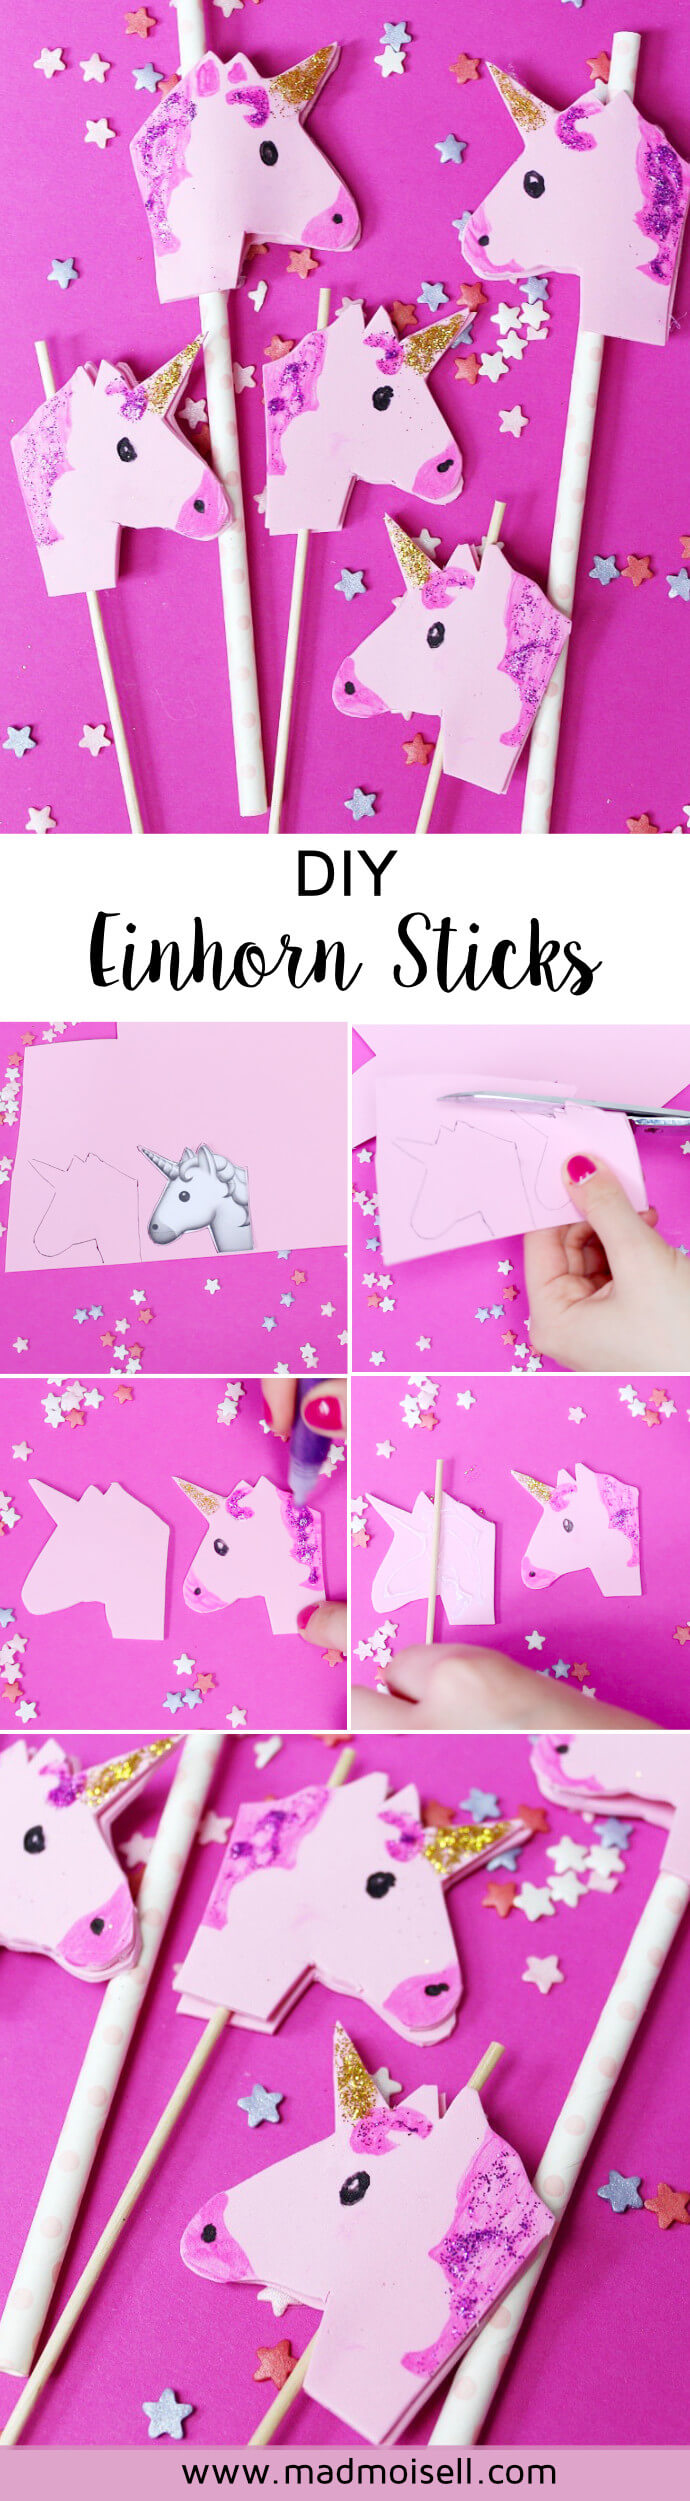 diy picknick ideen selber machen eis am stiel und einhorn limo. Black Bedroom Furniture Sets. Home Design Ideas